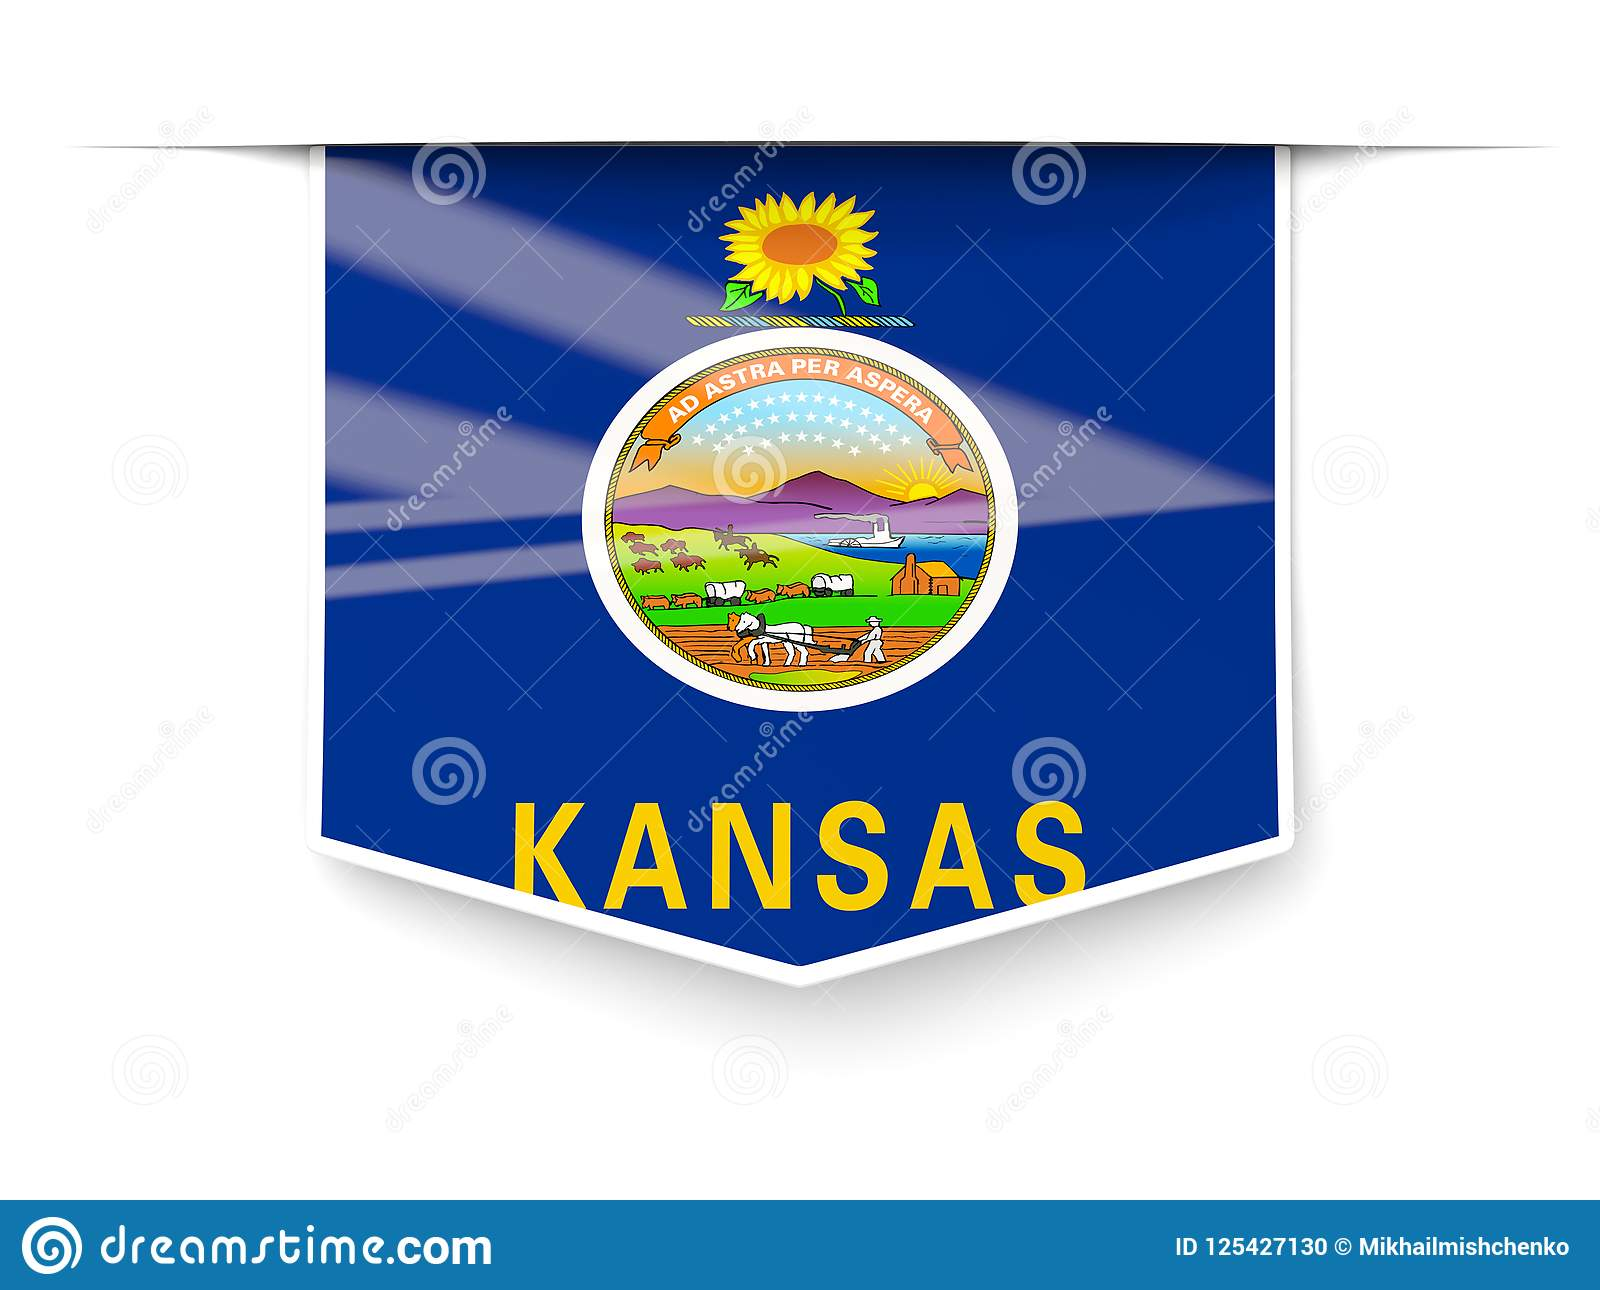 kansas state flag square label with shadow united states local